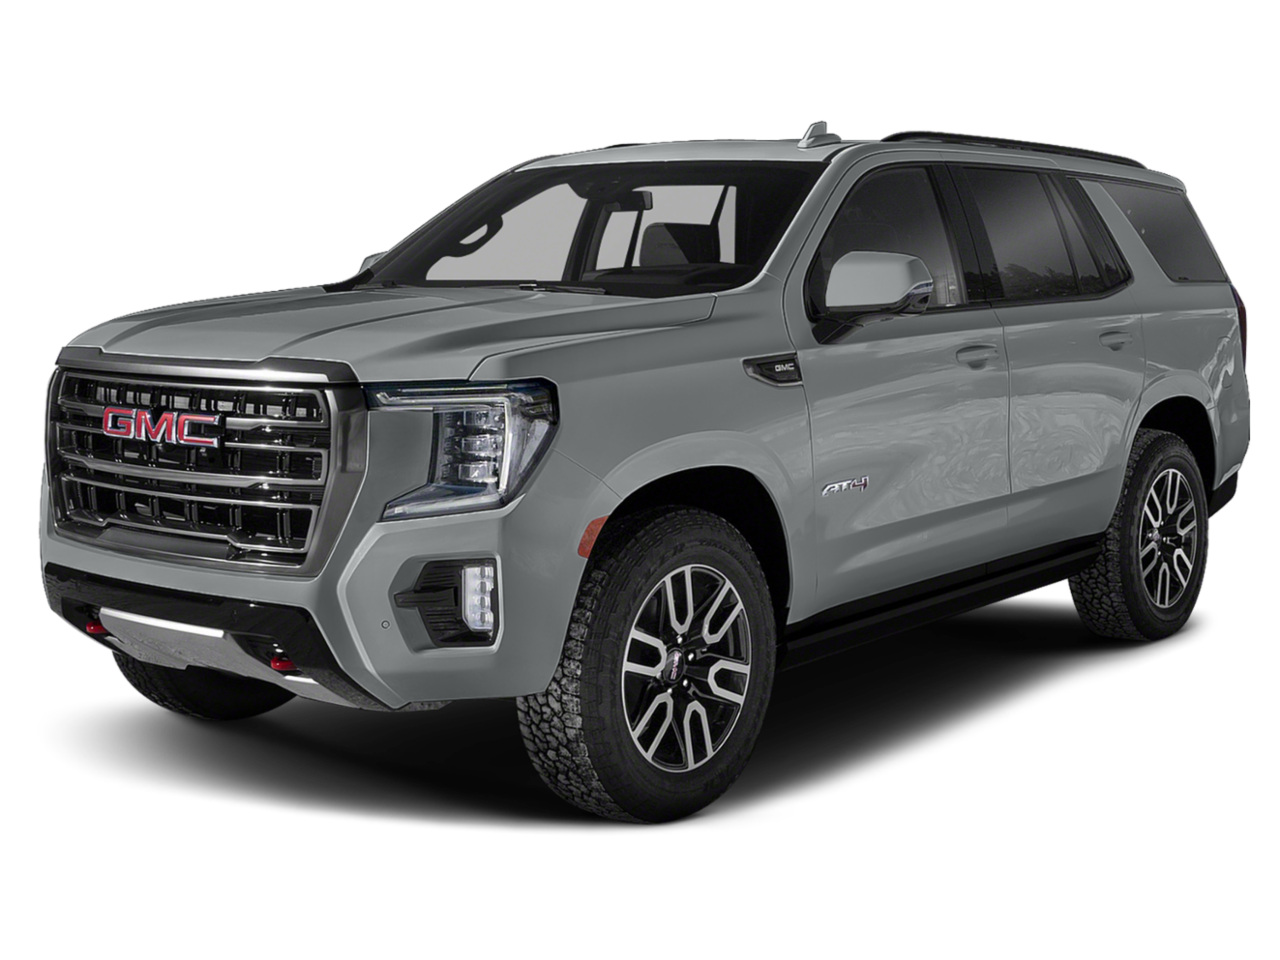 New Gmc Yukon From Your Smithers Bc Dealership Coast Mountain Chevrolet Buick Gmc Ltd